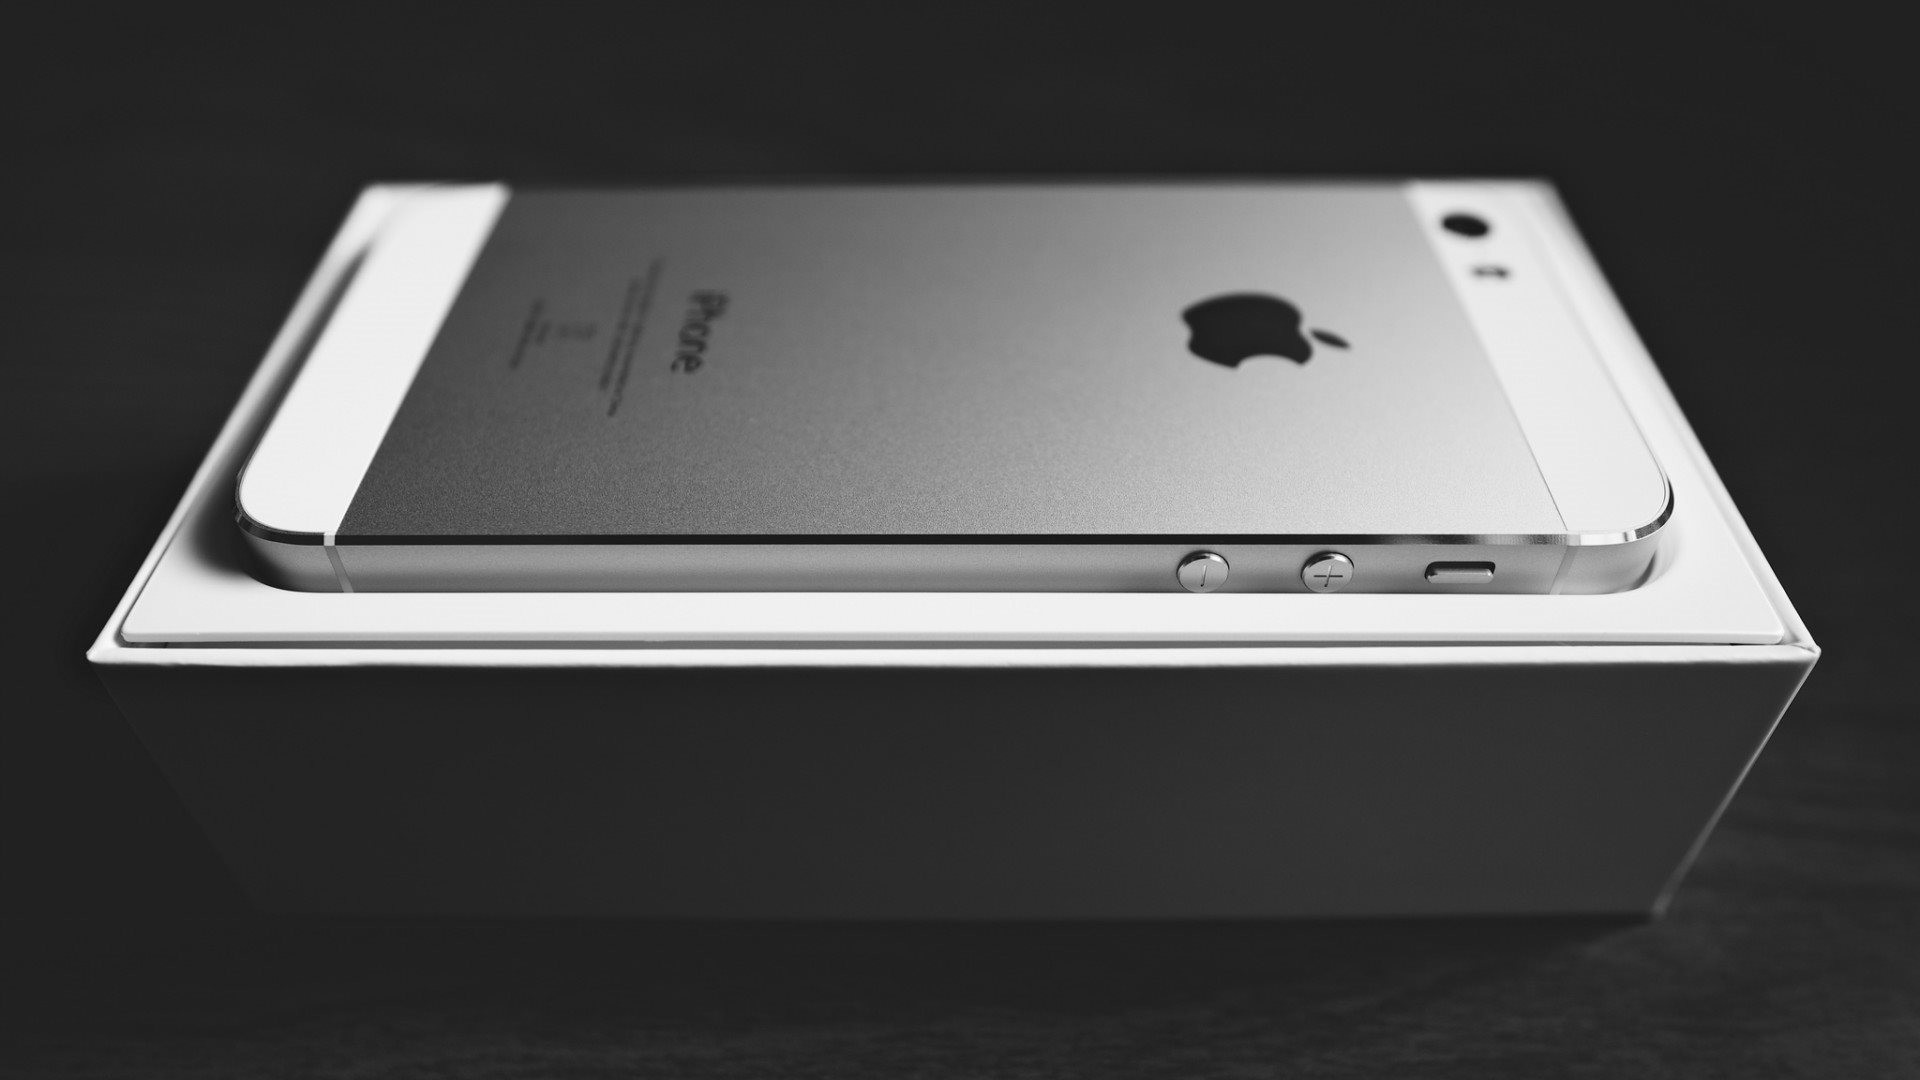 Iphone 5s In Box Wallpapers Hd Wallpapers   Data Src - Iphone 5s 4k Hd - HD Wallpaper